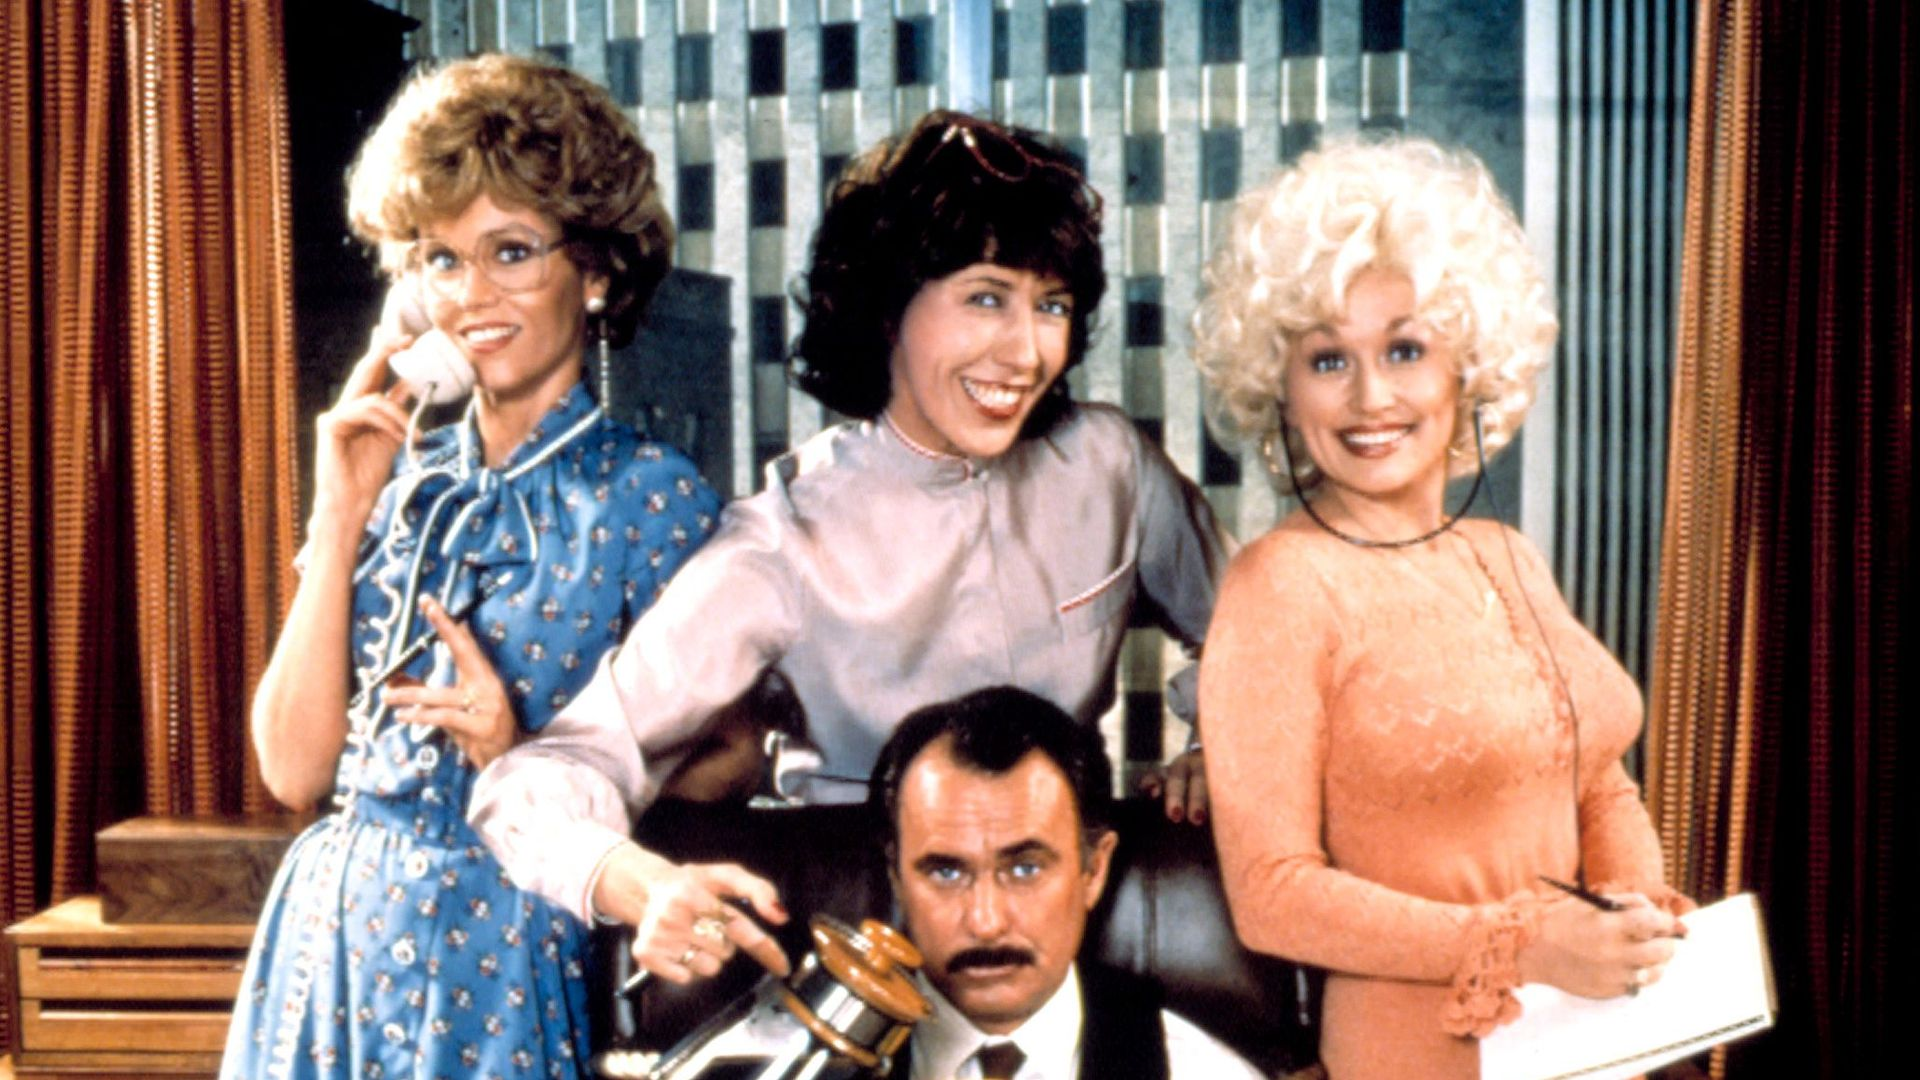 """Jane Fonda, Lily Tomlin, Dolly Parton, Dabney Coleman in promotional art for """"9 to 5."""""""